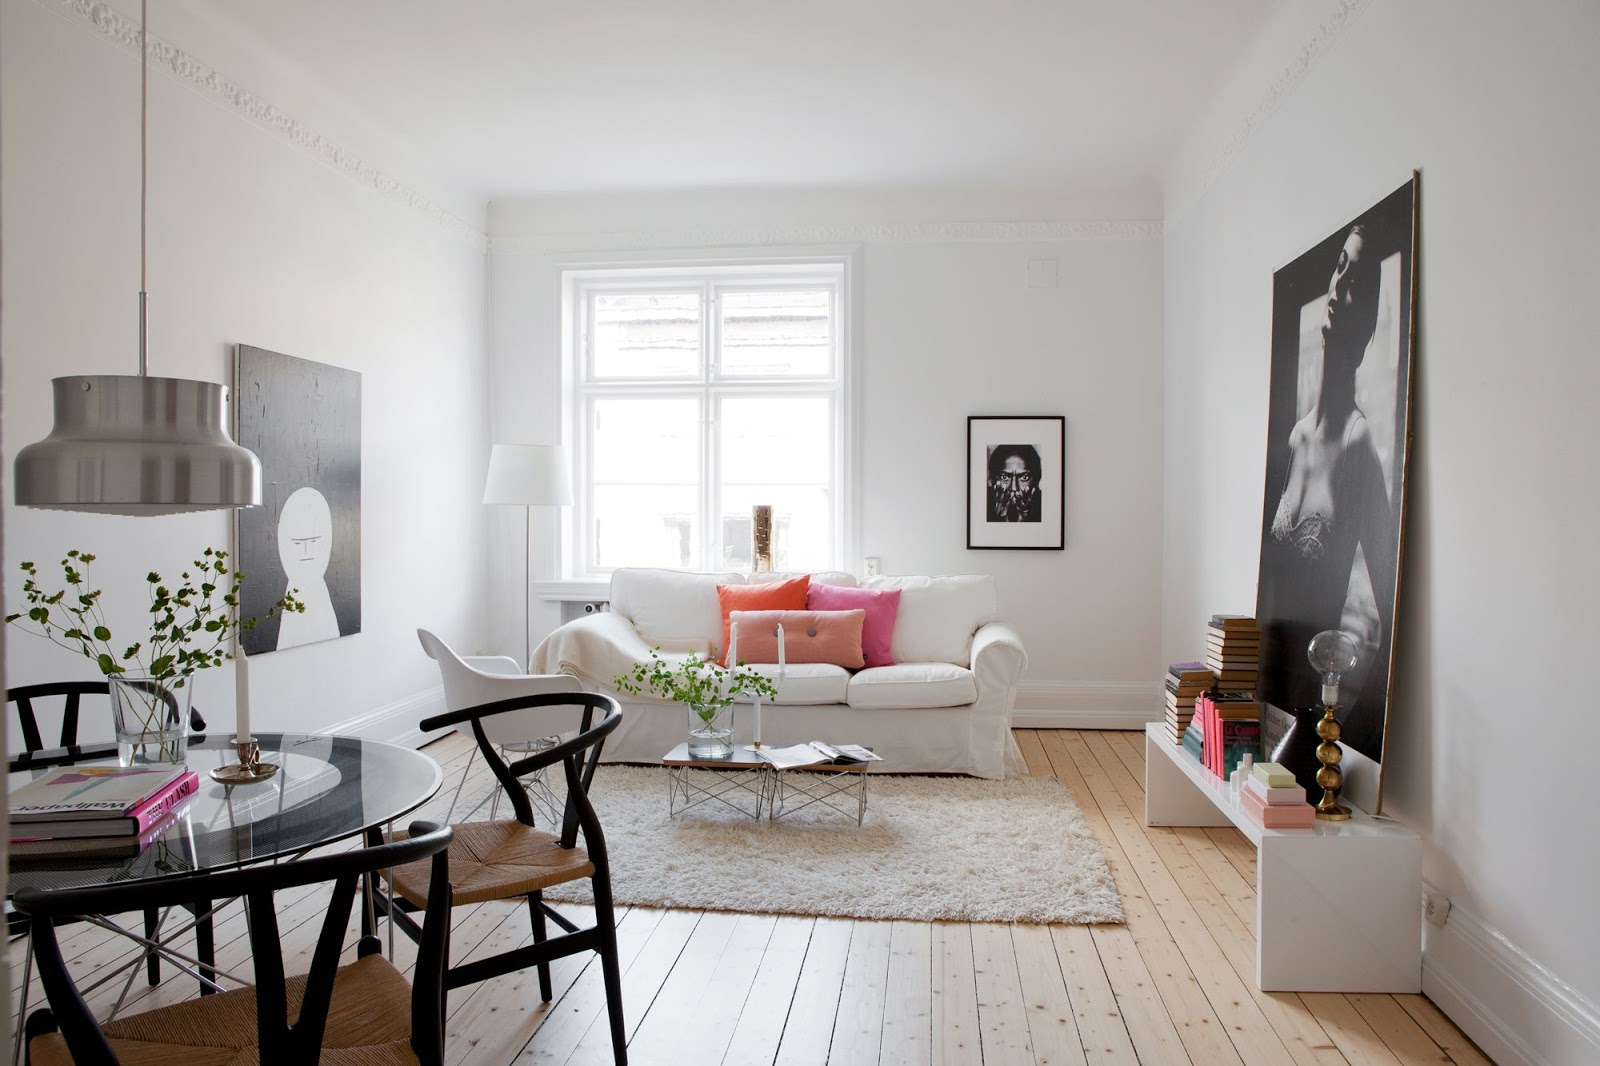 Salones Con Comedor My Scandinavian Home: Art Photography In A Malmö Home